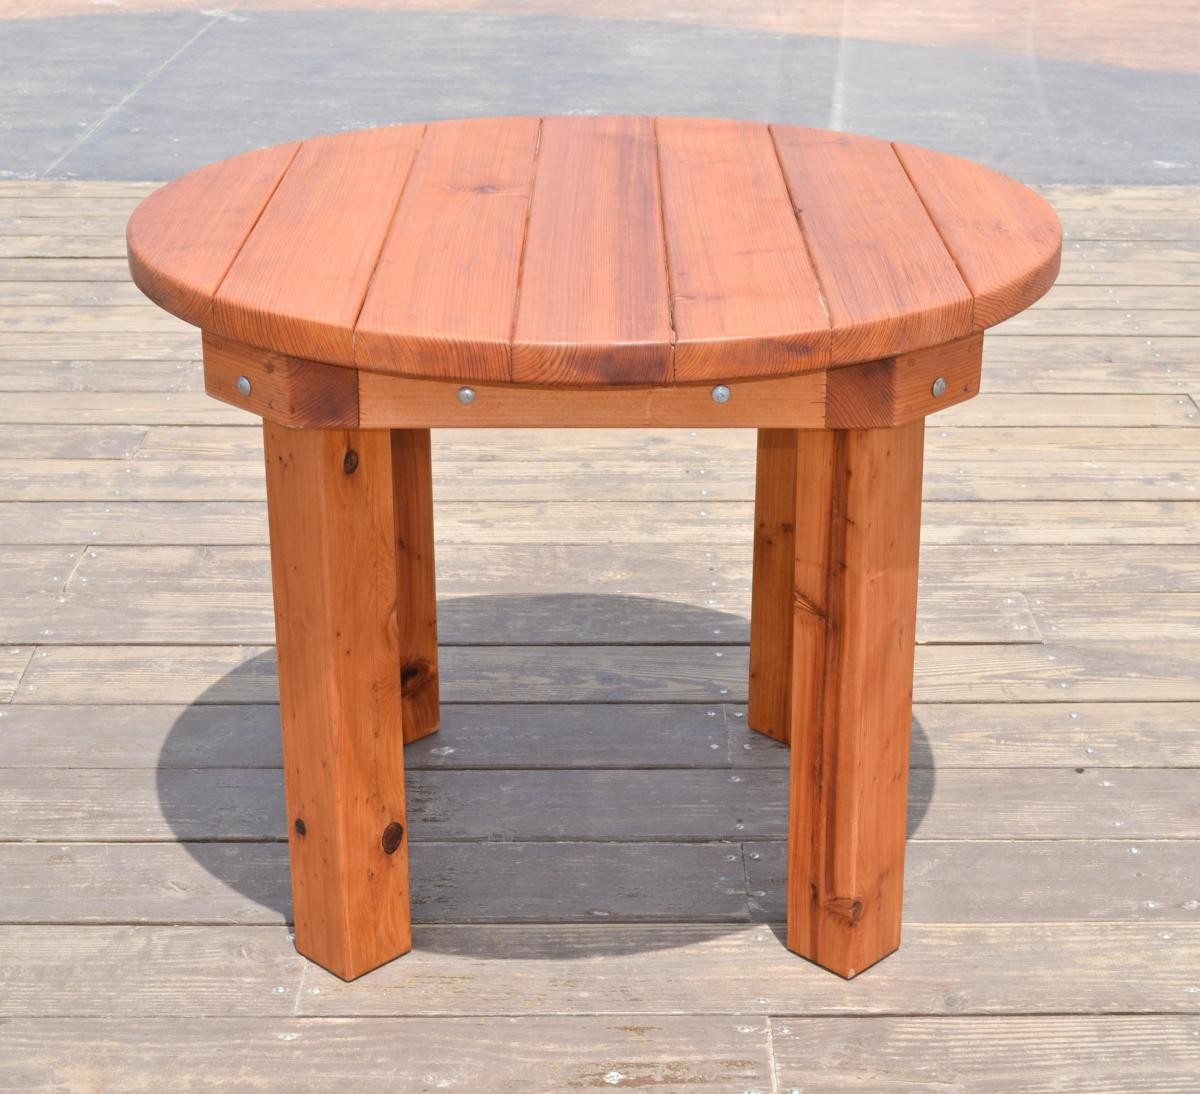 Round Patio Tables Built To Last Decades Forever Redwood